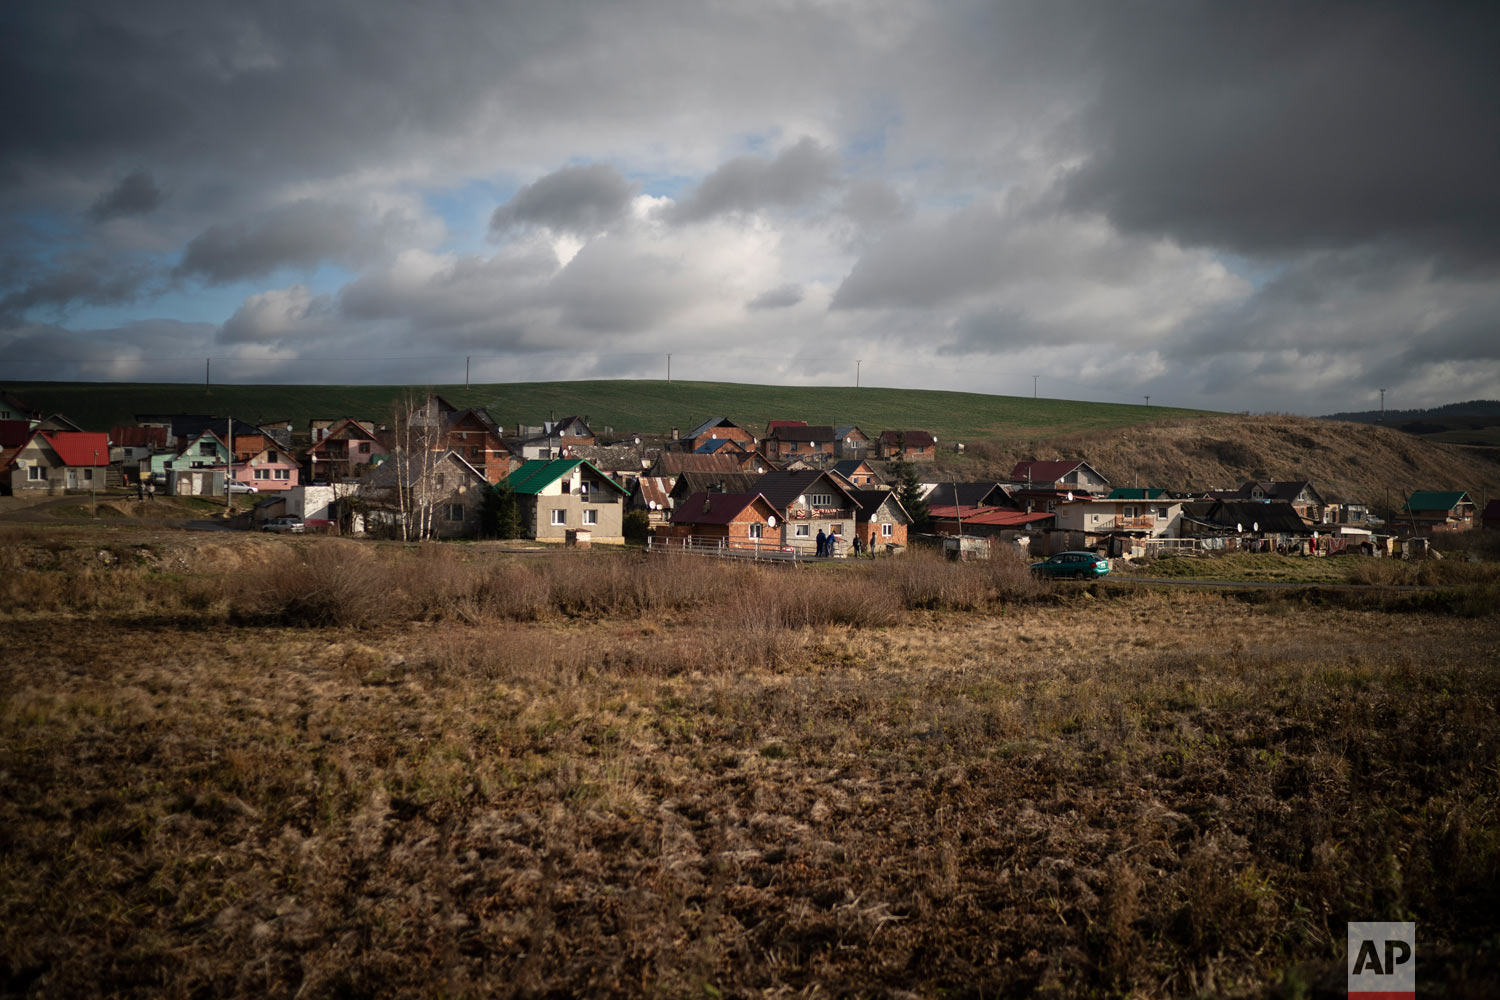 Dark clouds hover over Podhorany village after a storm on Nov. 14, 2018, near Kezmarok, Slovakia. (AP Photo/Felipe Dana)